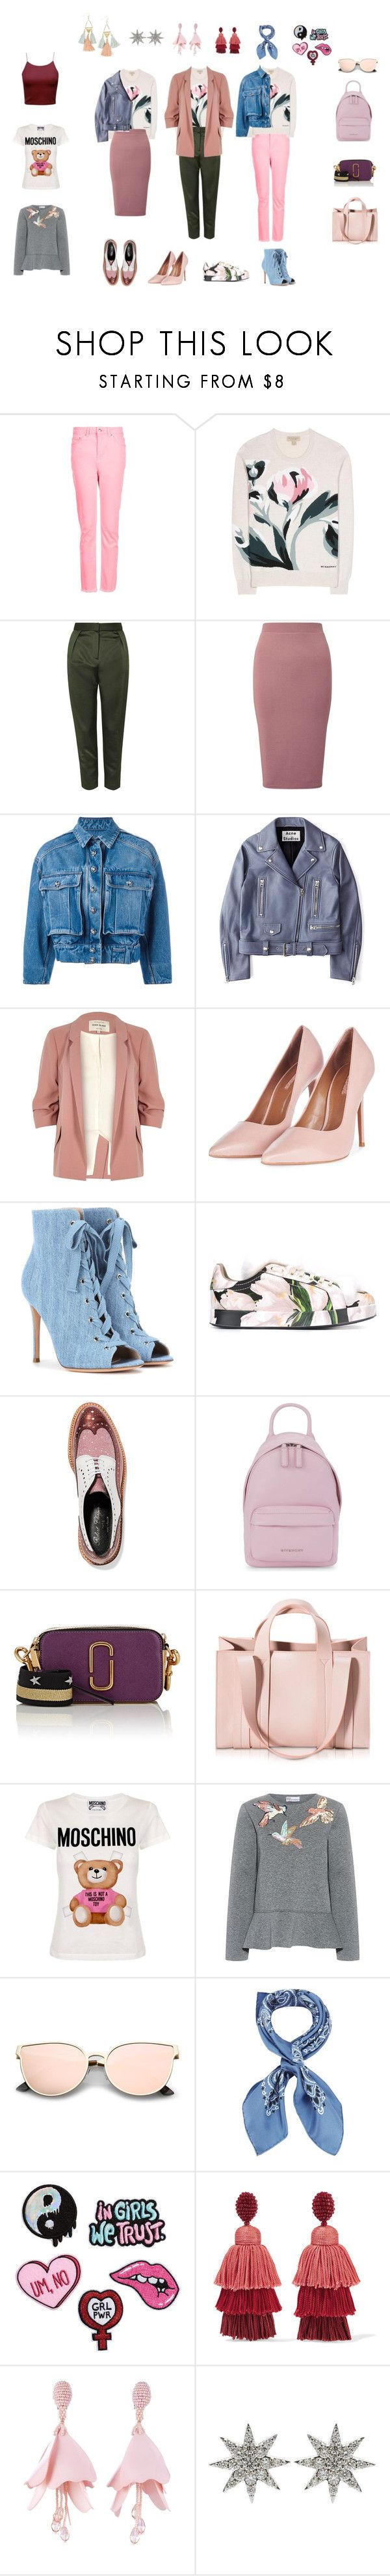 """""""Albina"""" by lar-ra on Polyvore featuring Topshop, Burberry, Miss Selfridge, Dolce&Gabbana, Acne Studios, River Island, Gianvito Rossi, Robert Clergerie, Givenchy и Marc Jacobs"""